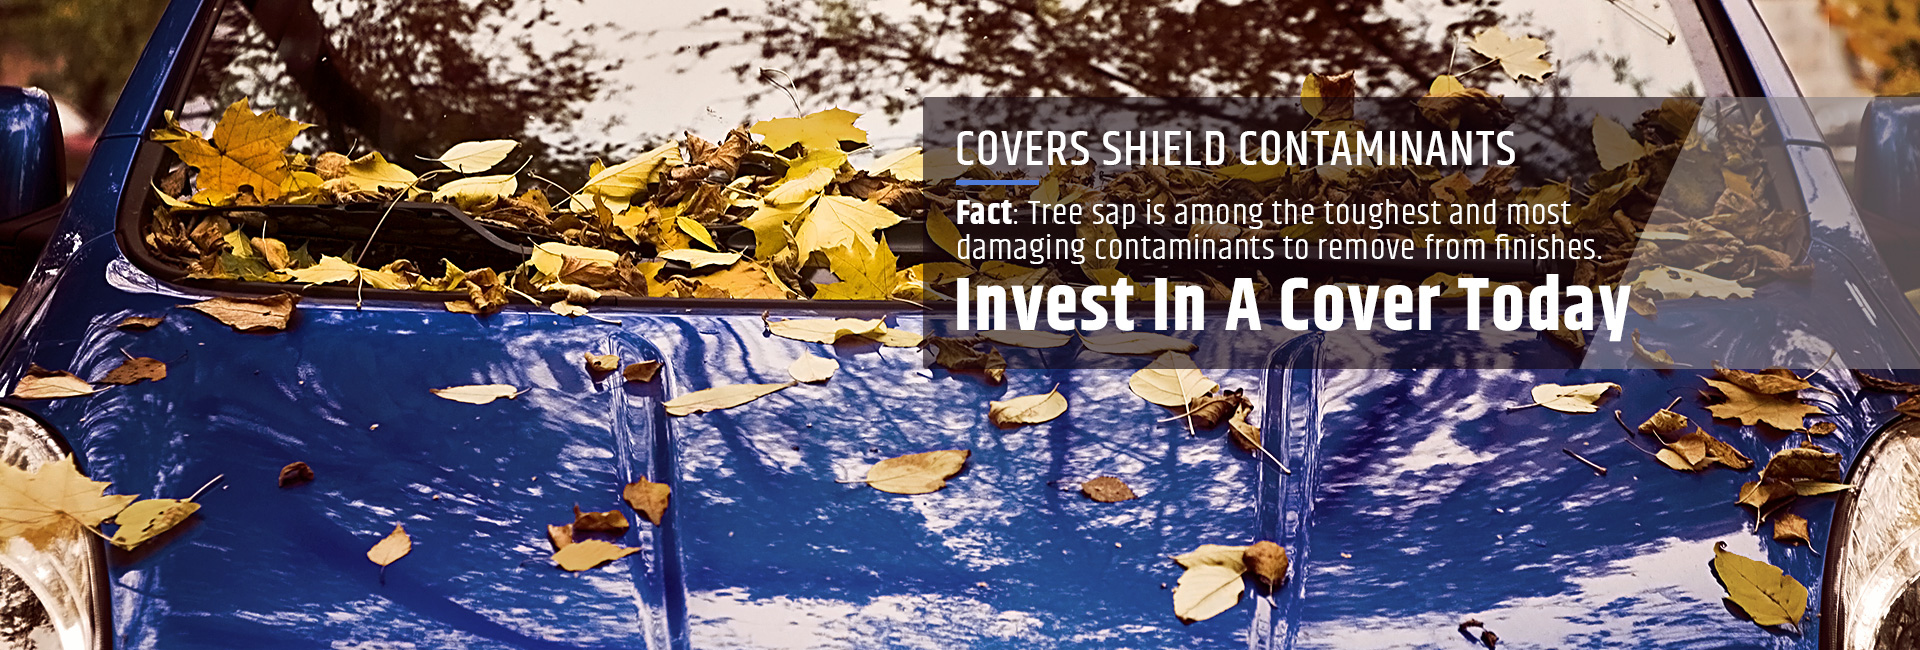 Covers shield contaminants